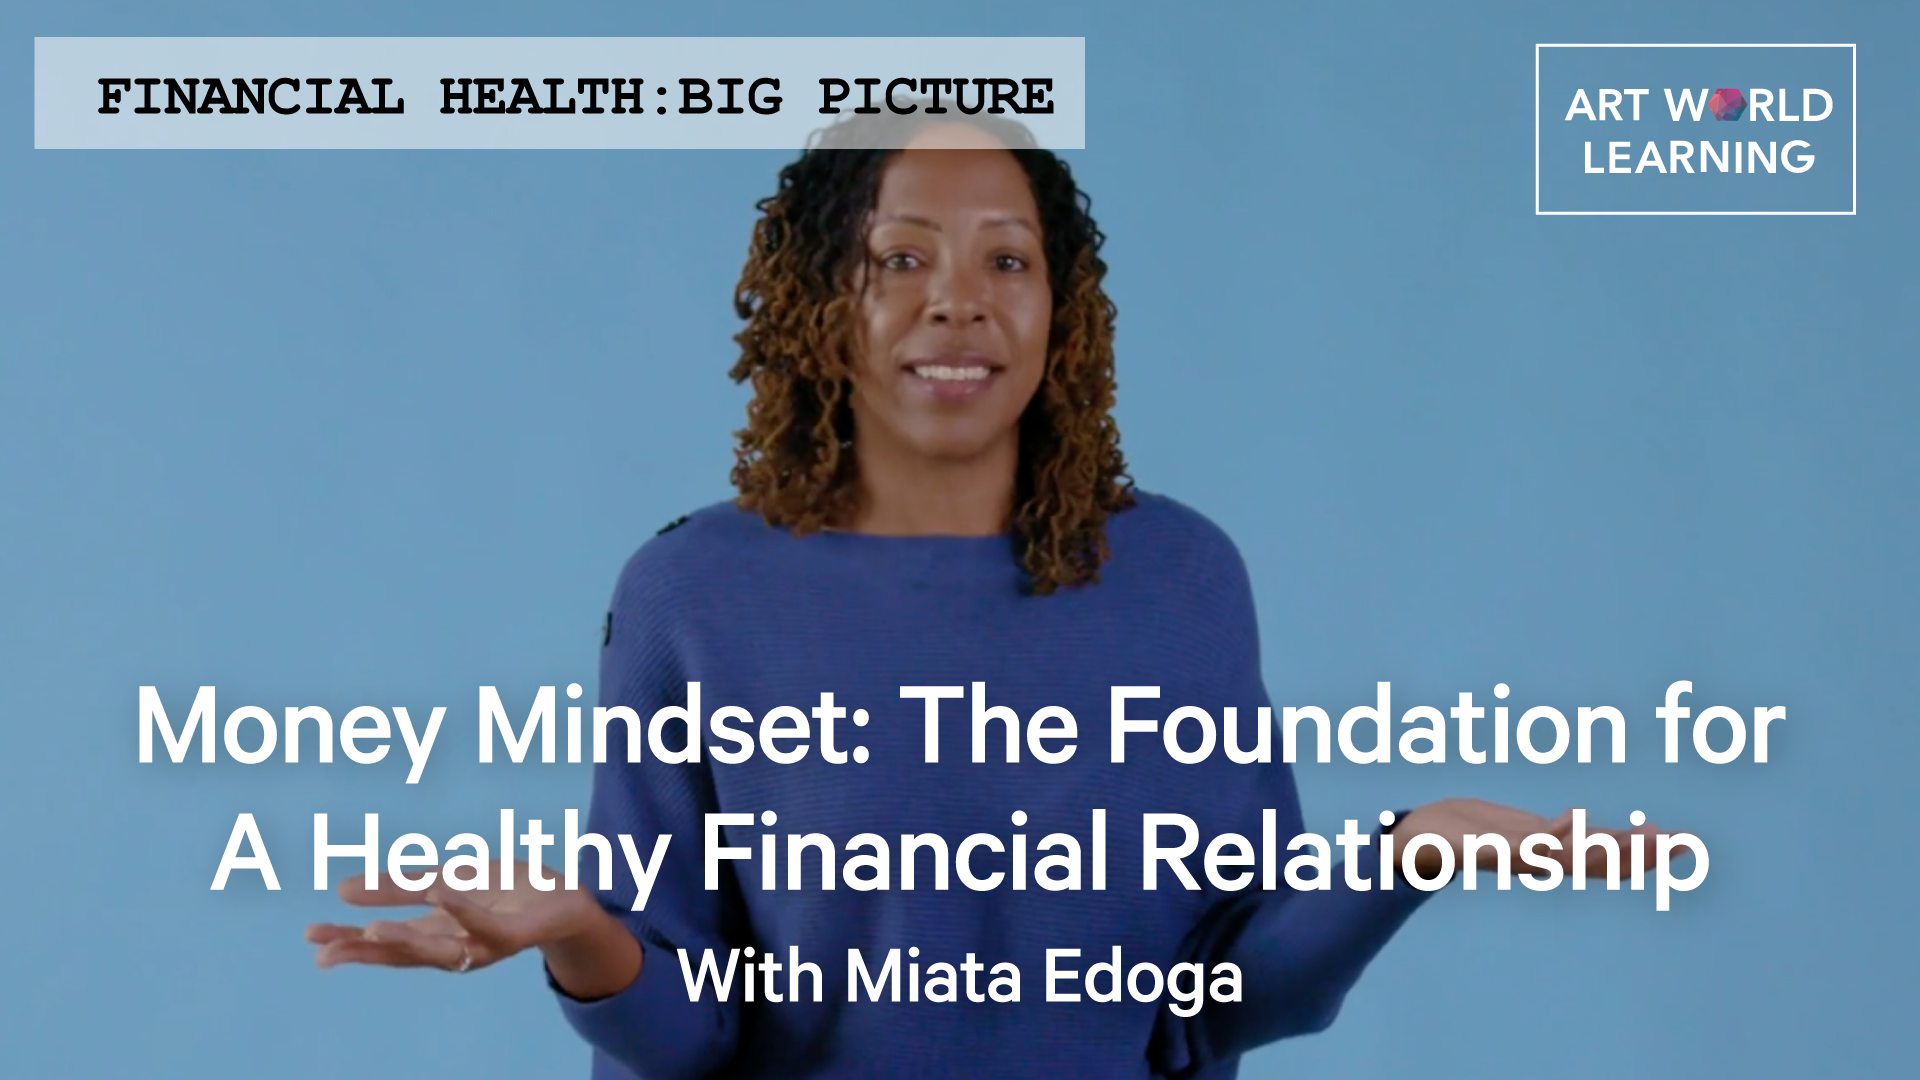 Words Financial Health: Big Picture with Amy Whitaker